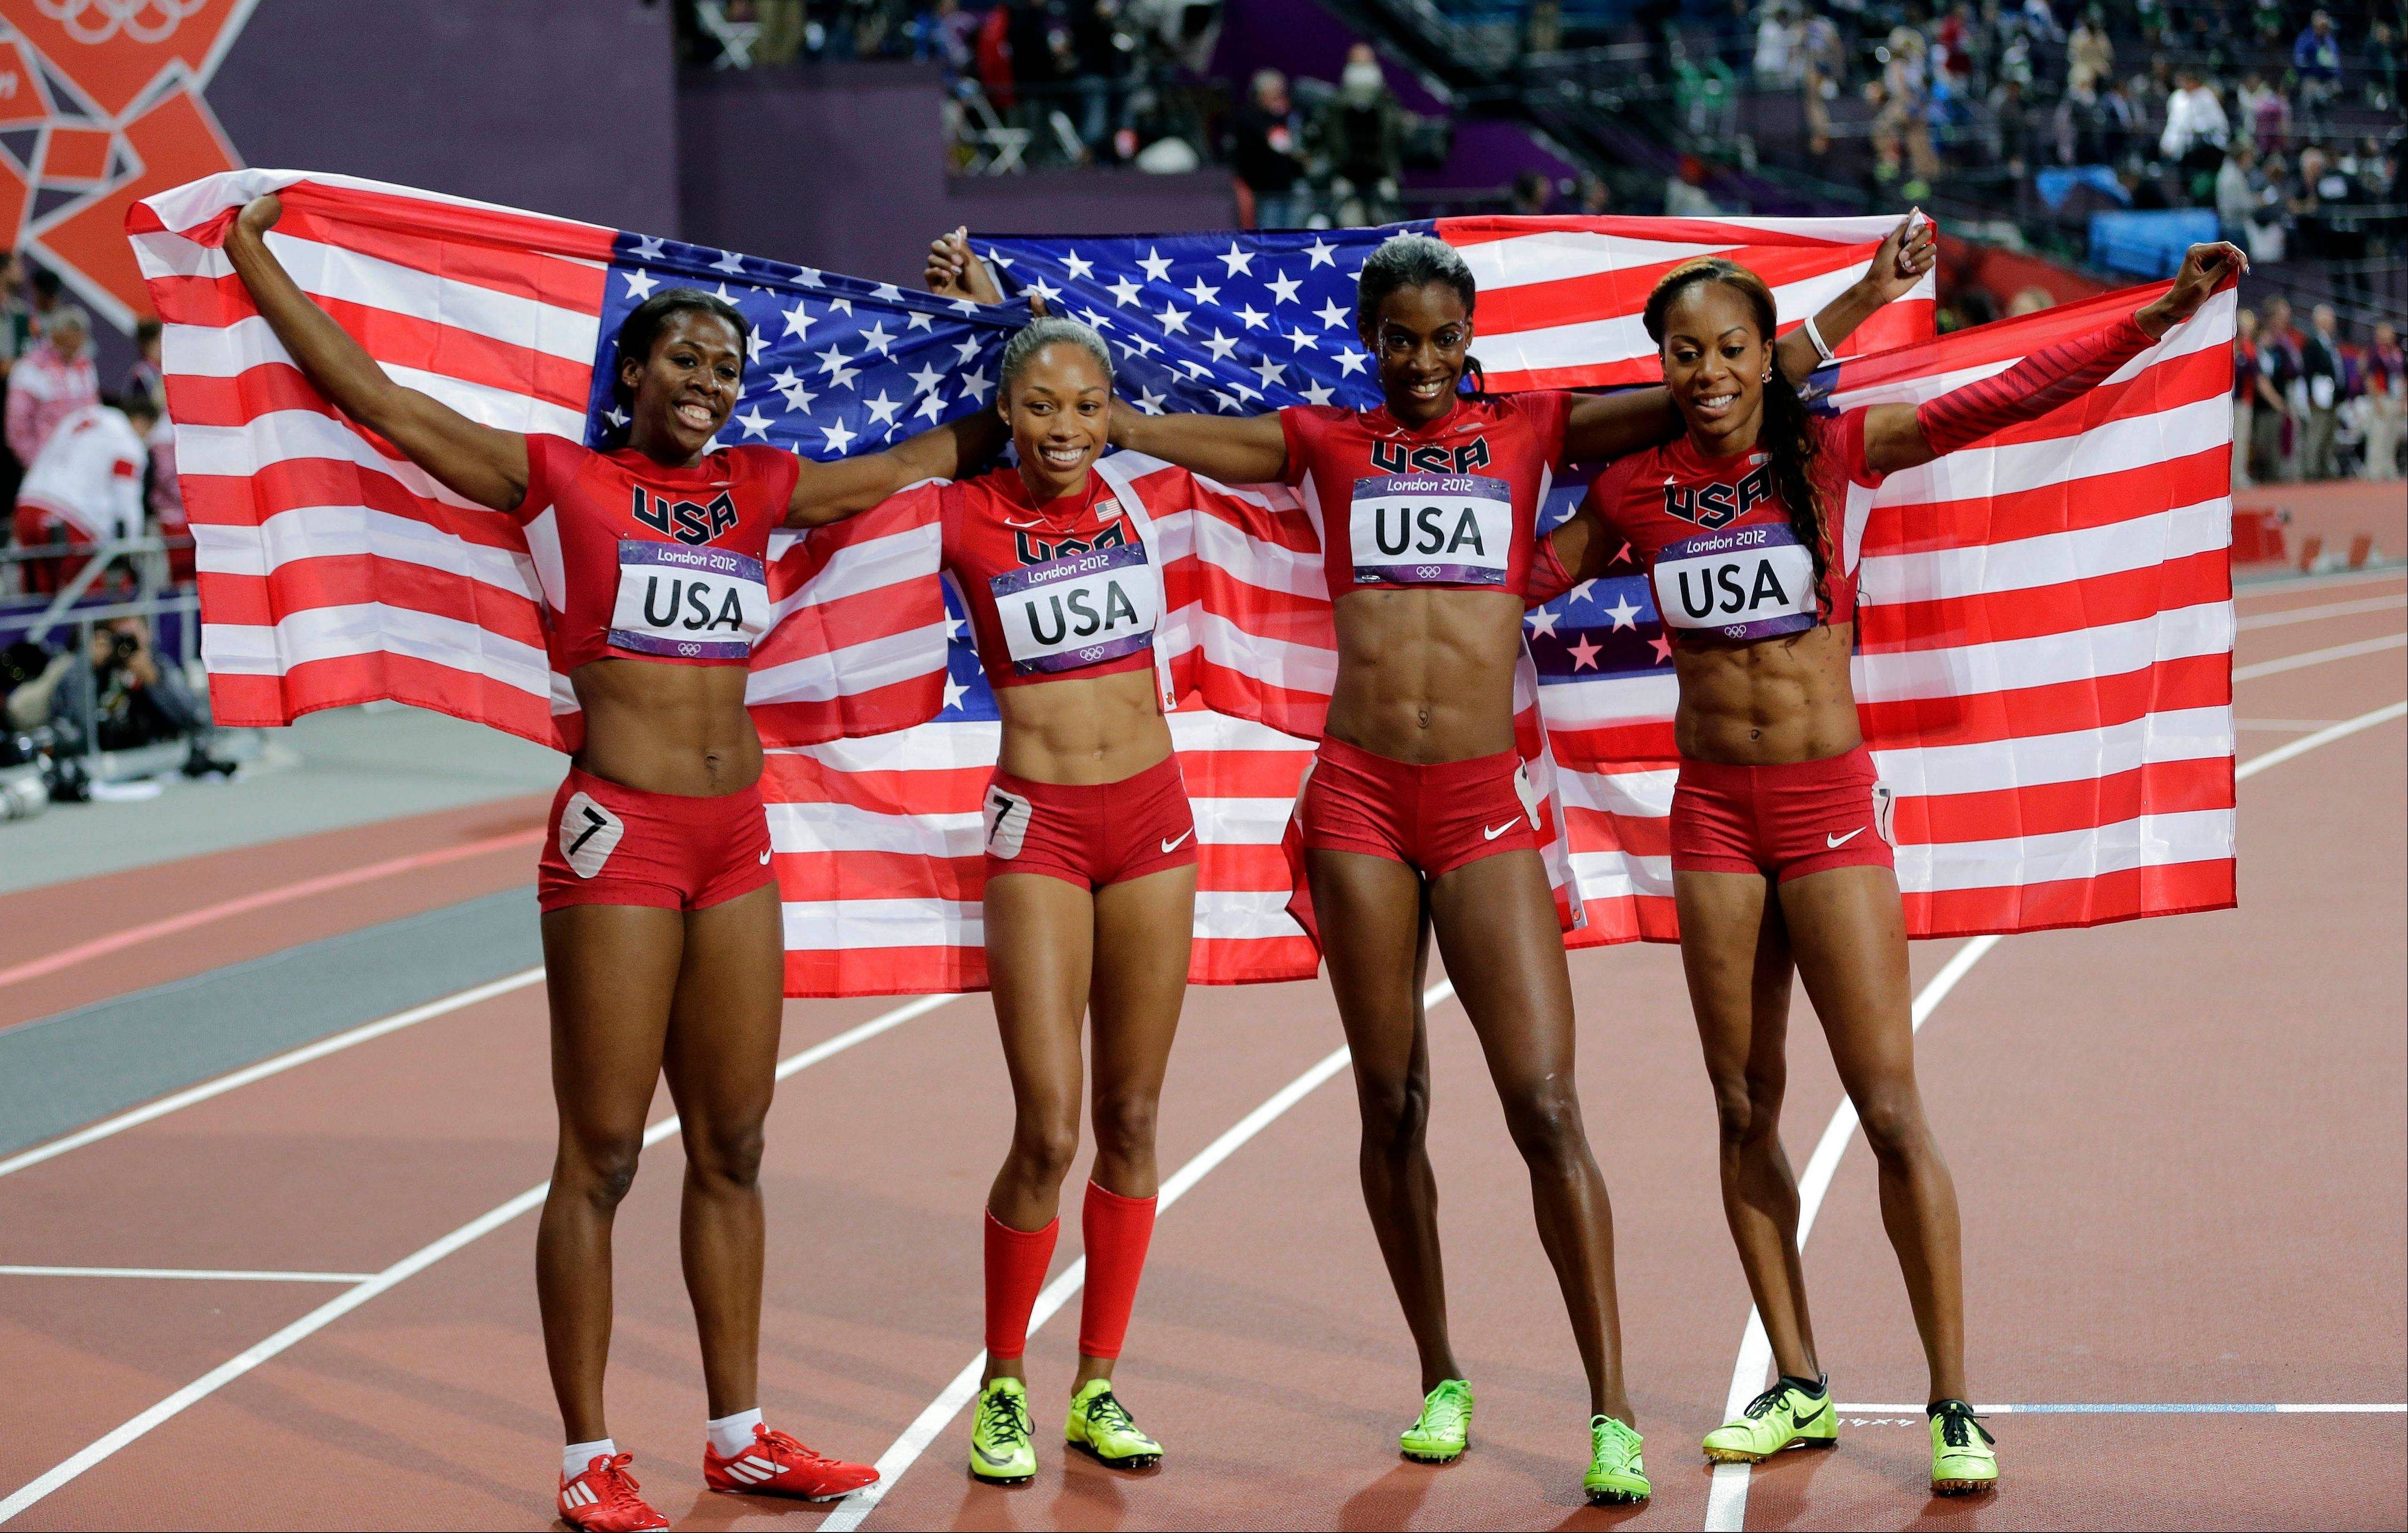 From left, United States' Francena McCorory, United States' Allyson Felix, United States' Deedee Trotter and United States' Sanya Richards-Ross celebrate winning gold in the women's 4x400-meter relay final during the athletics in the Olympic Stadium at the 2012 Summer Olympics, London, Saturday, Aug. 11, 2012.